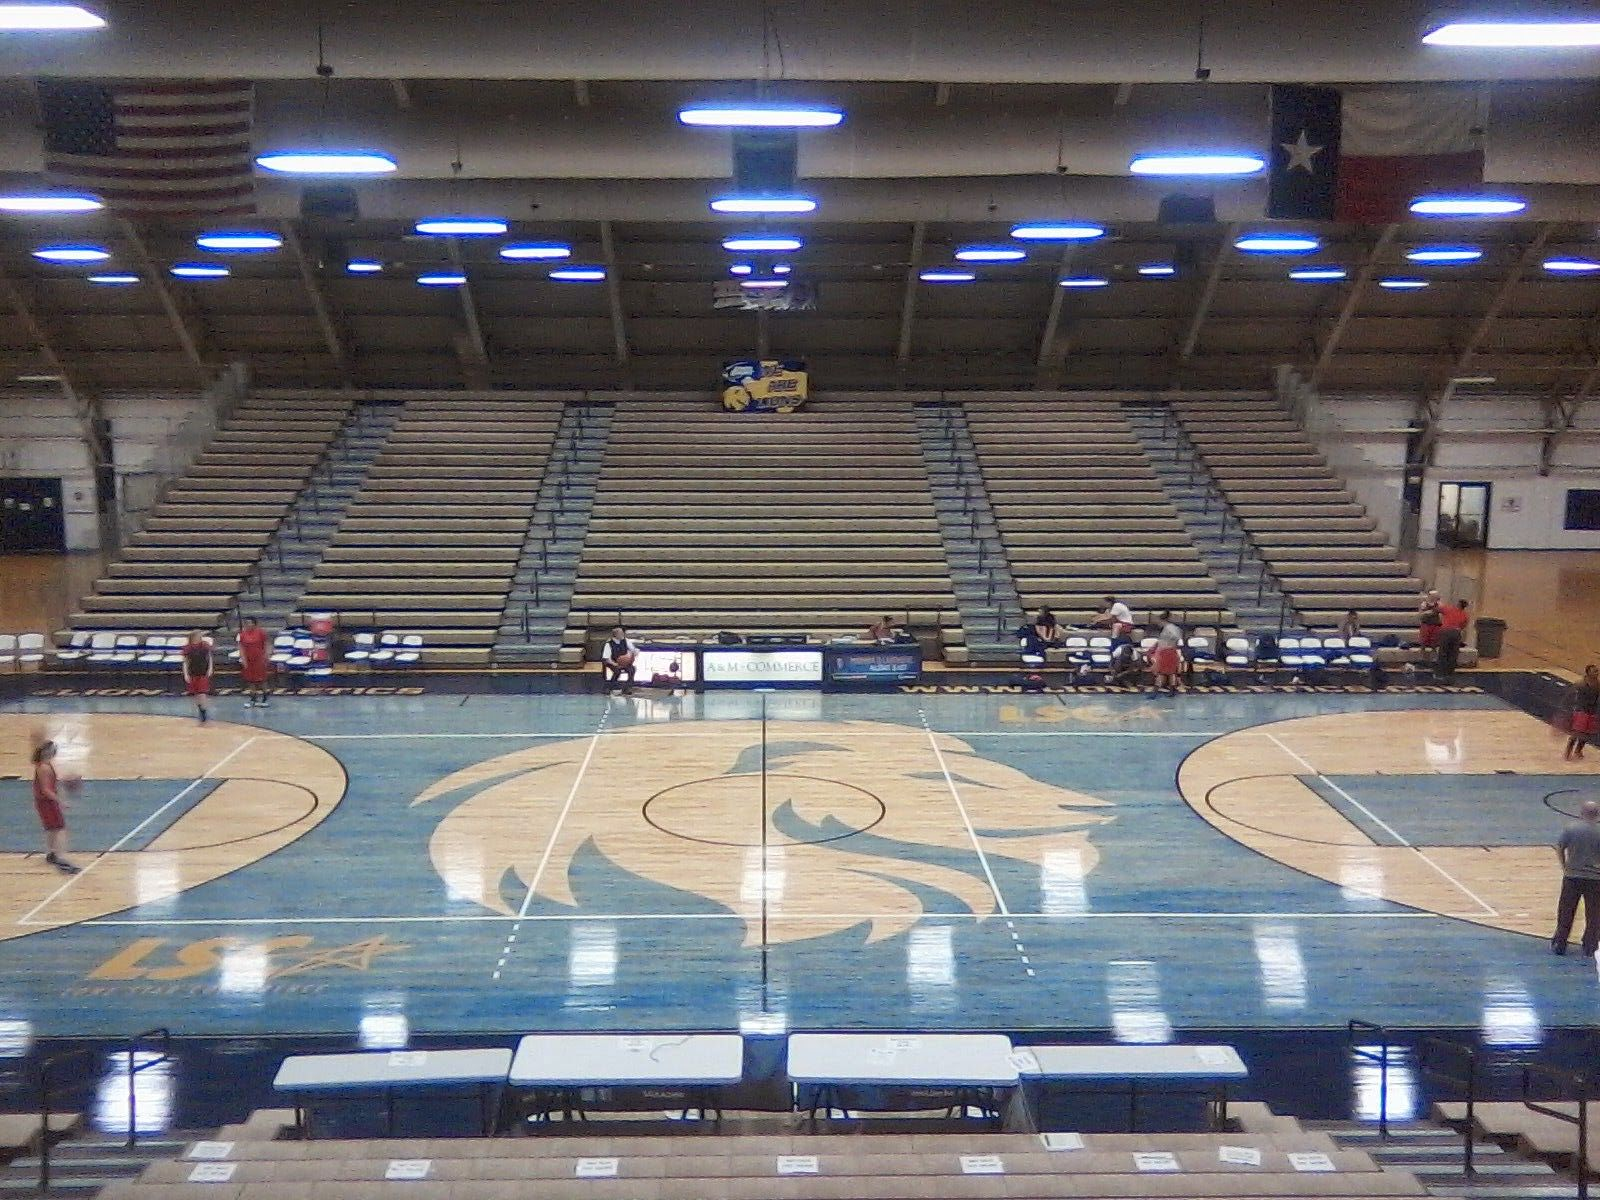 Rogers State Basketball Fear The Claw Coolest College Courts Indoor Arena Basketball Basketball Court